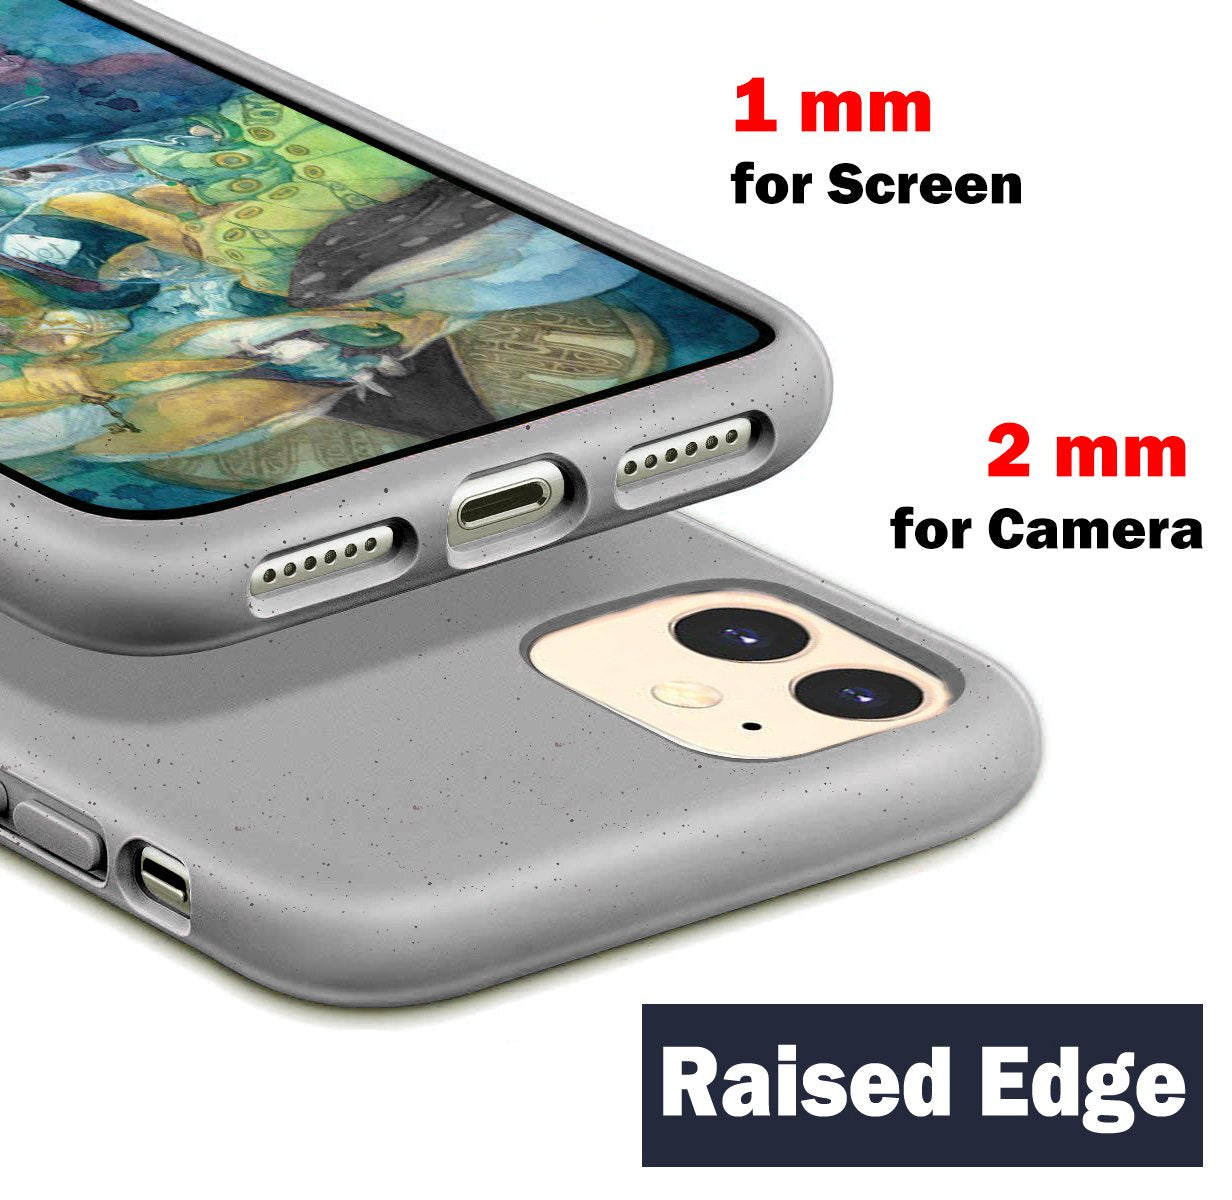 ODOYO iPhone 11 Soft Silicone Case, Shockproof, Slim Fit, Full Silicon Gel Rubber Cover with Raised Edge for Camera and Screen Protection - Compatible with Apple iPhone 11 6.1 Inch 2019 (Grey)